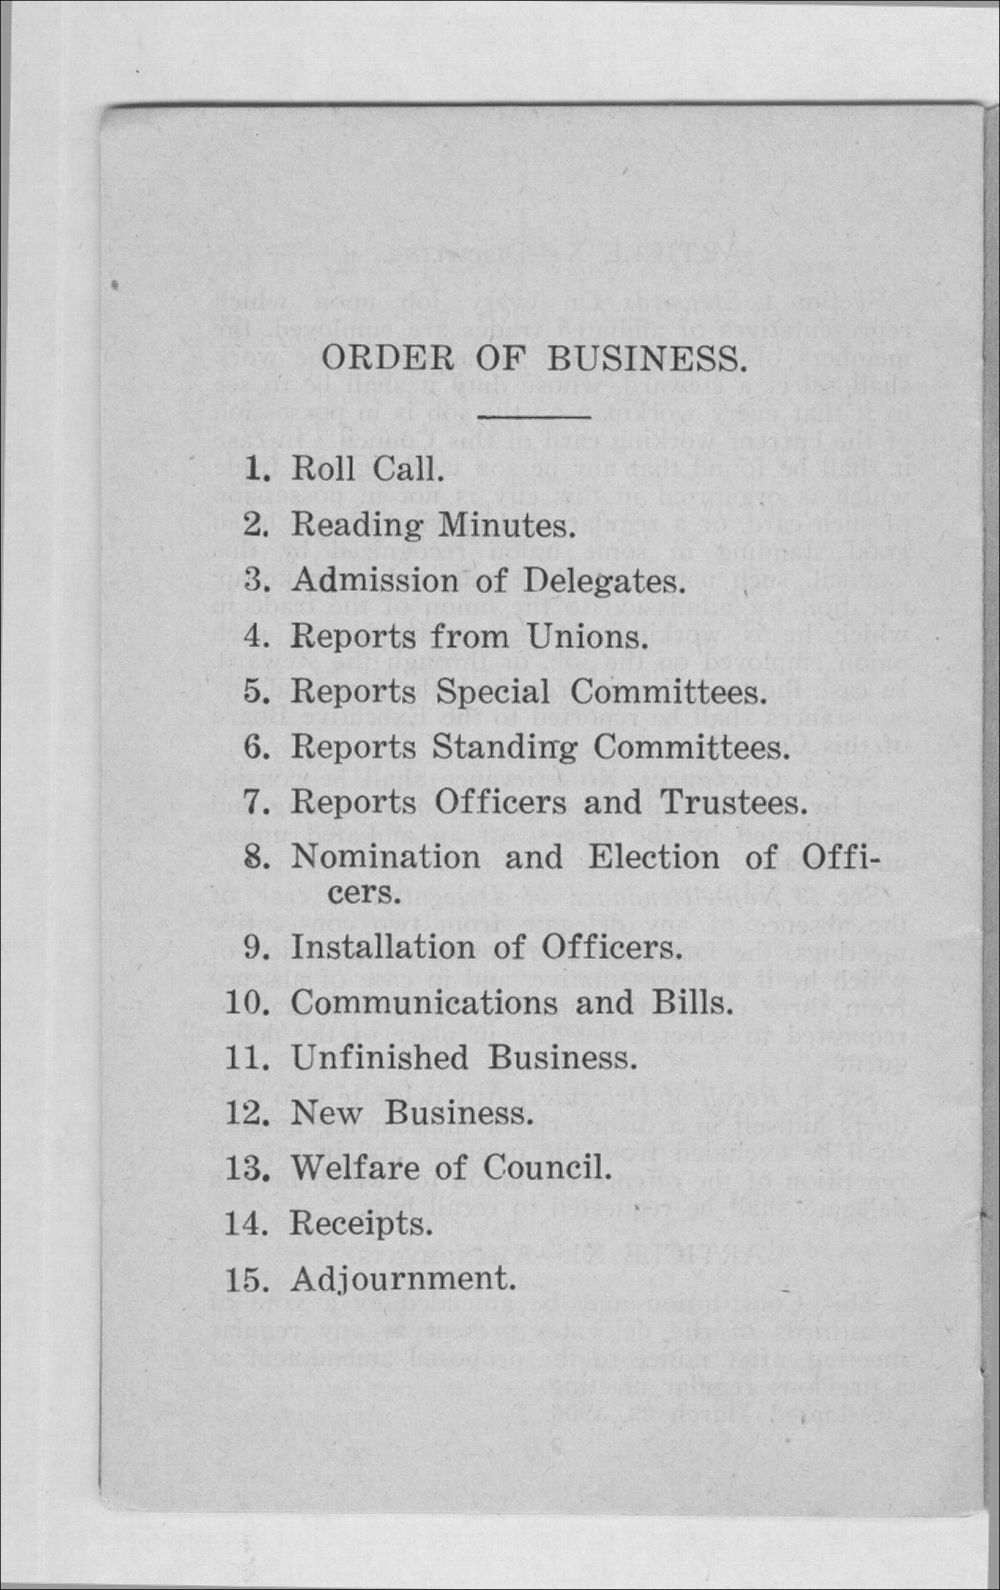 Constitution and by-laws of the Industrial Council - 11